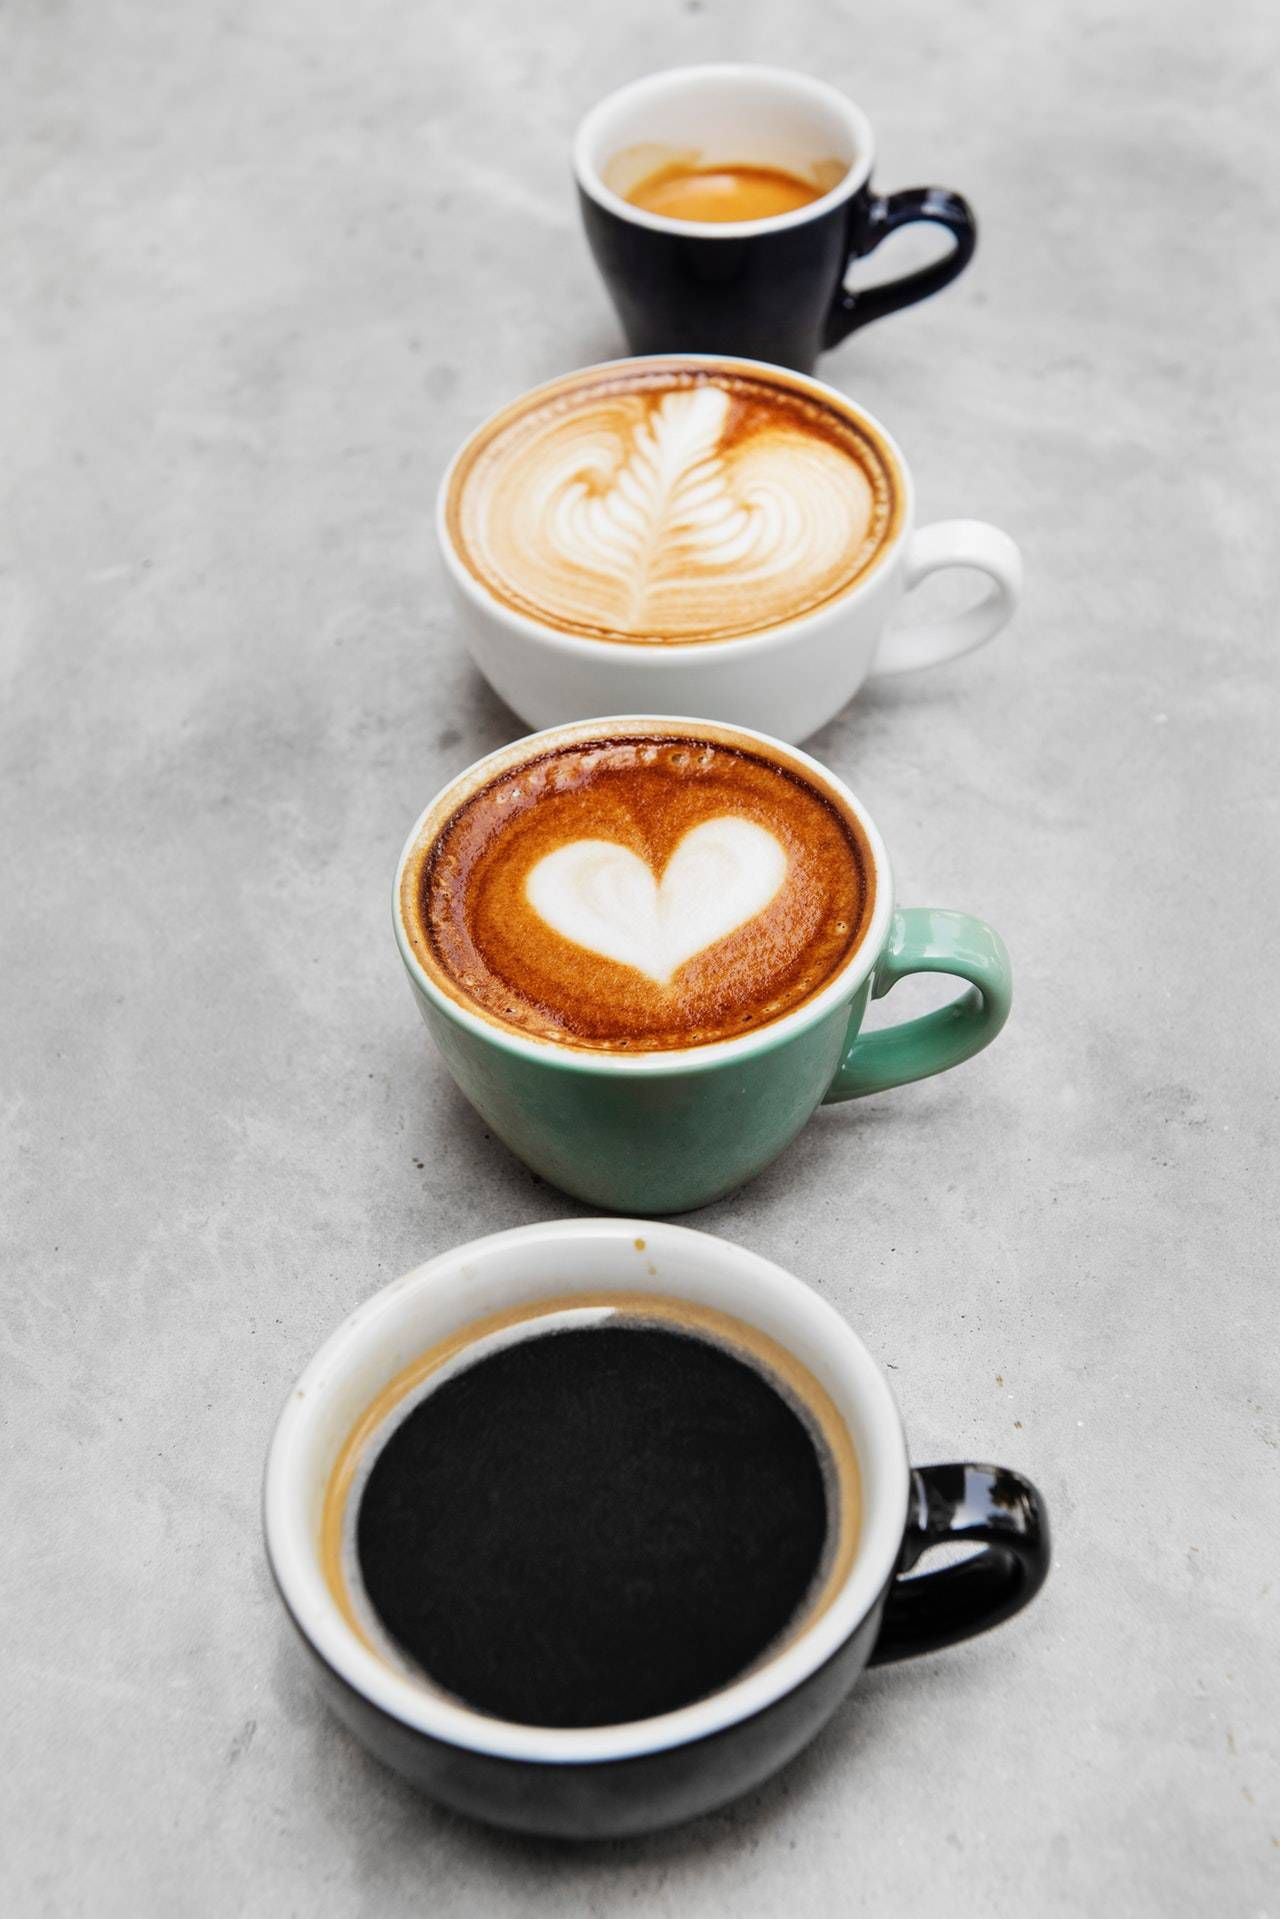 Espresso vs Coffee: What's the difference? | Keto coffee ...